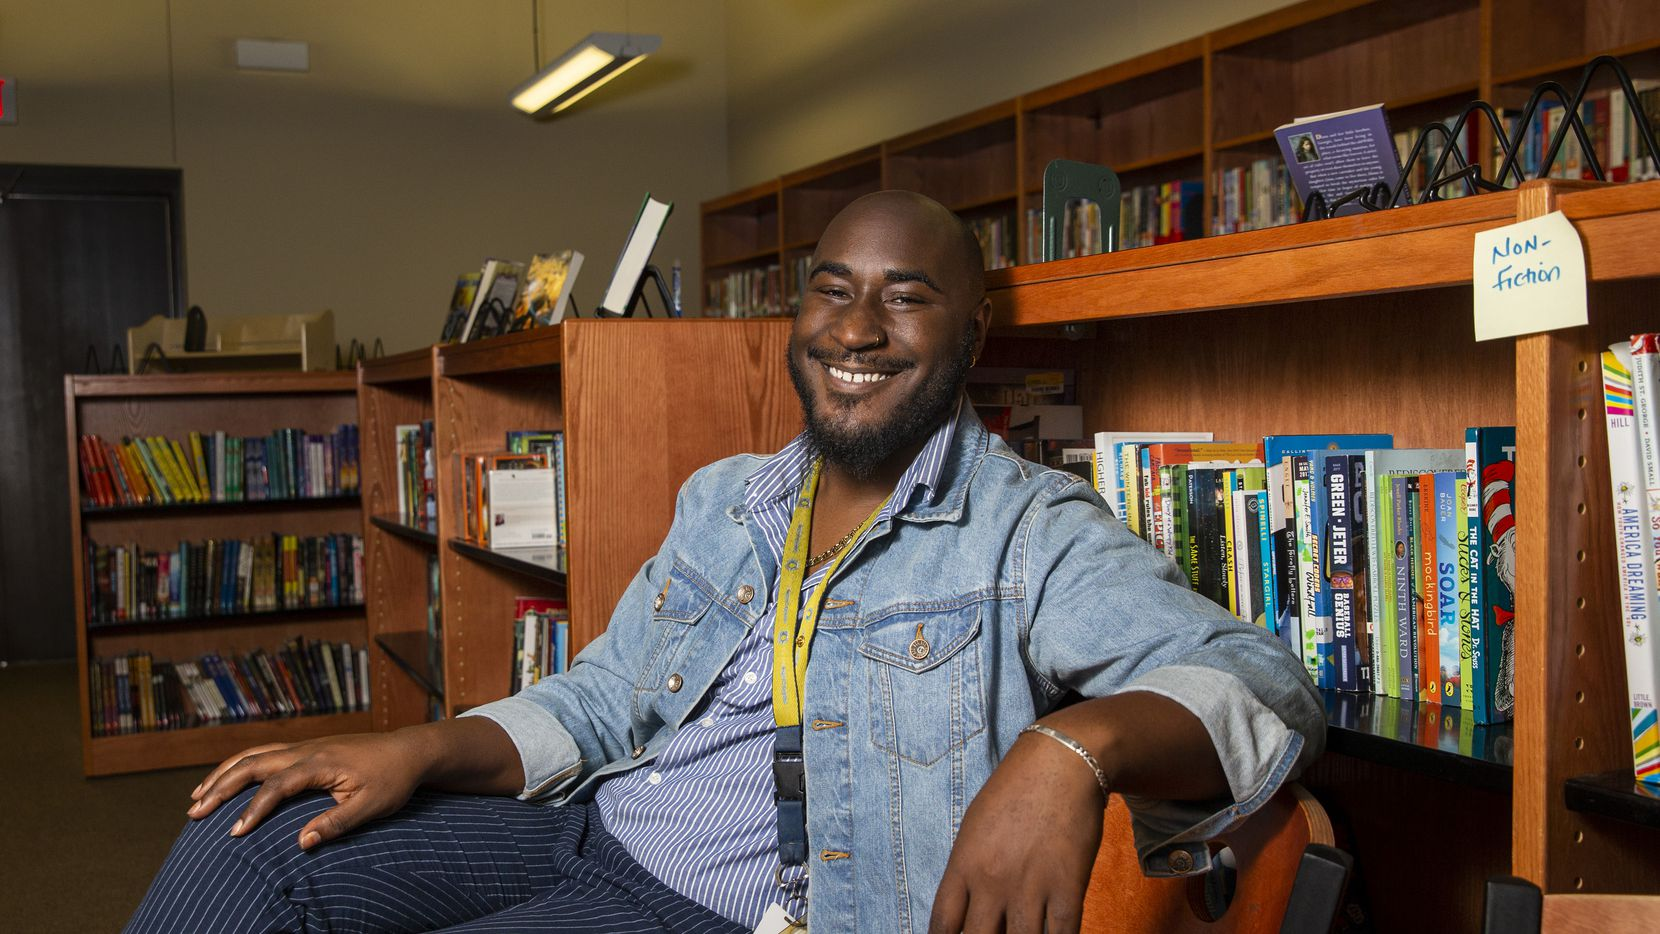 Terrence Smith, a fourth grade reading and humanities teacher, poses for a portrait at Uplift Infinity Preparatory in Irving, Texas, on Friday, November 22, 2019. Smith is an educator at Uplift Infinity Preparatory through Urban Teachers, a teaching training program in three U.S. metropolitan areas that is launching a new program designed to draw black men and women into the teaching workforce.